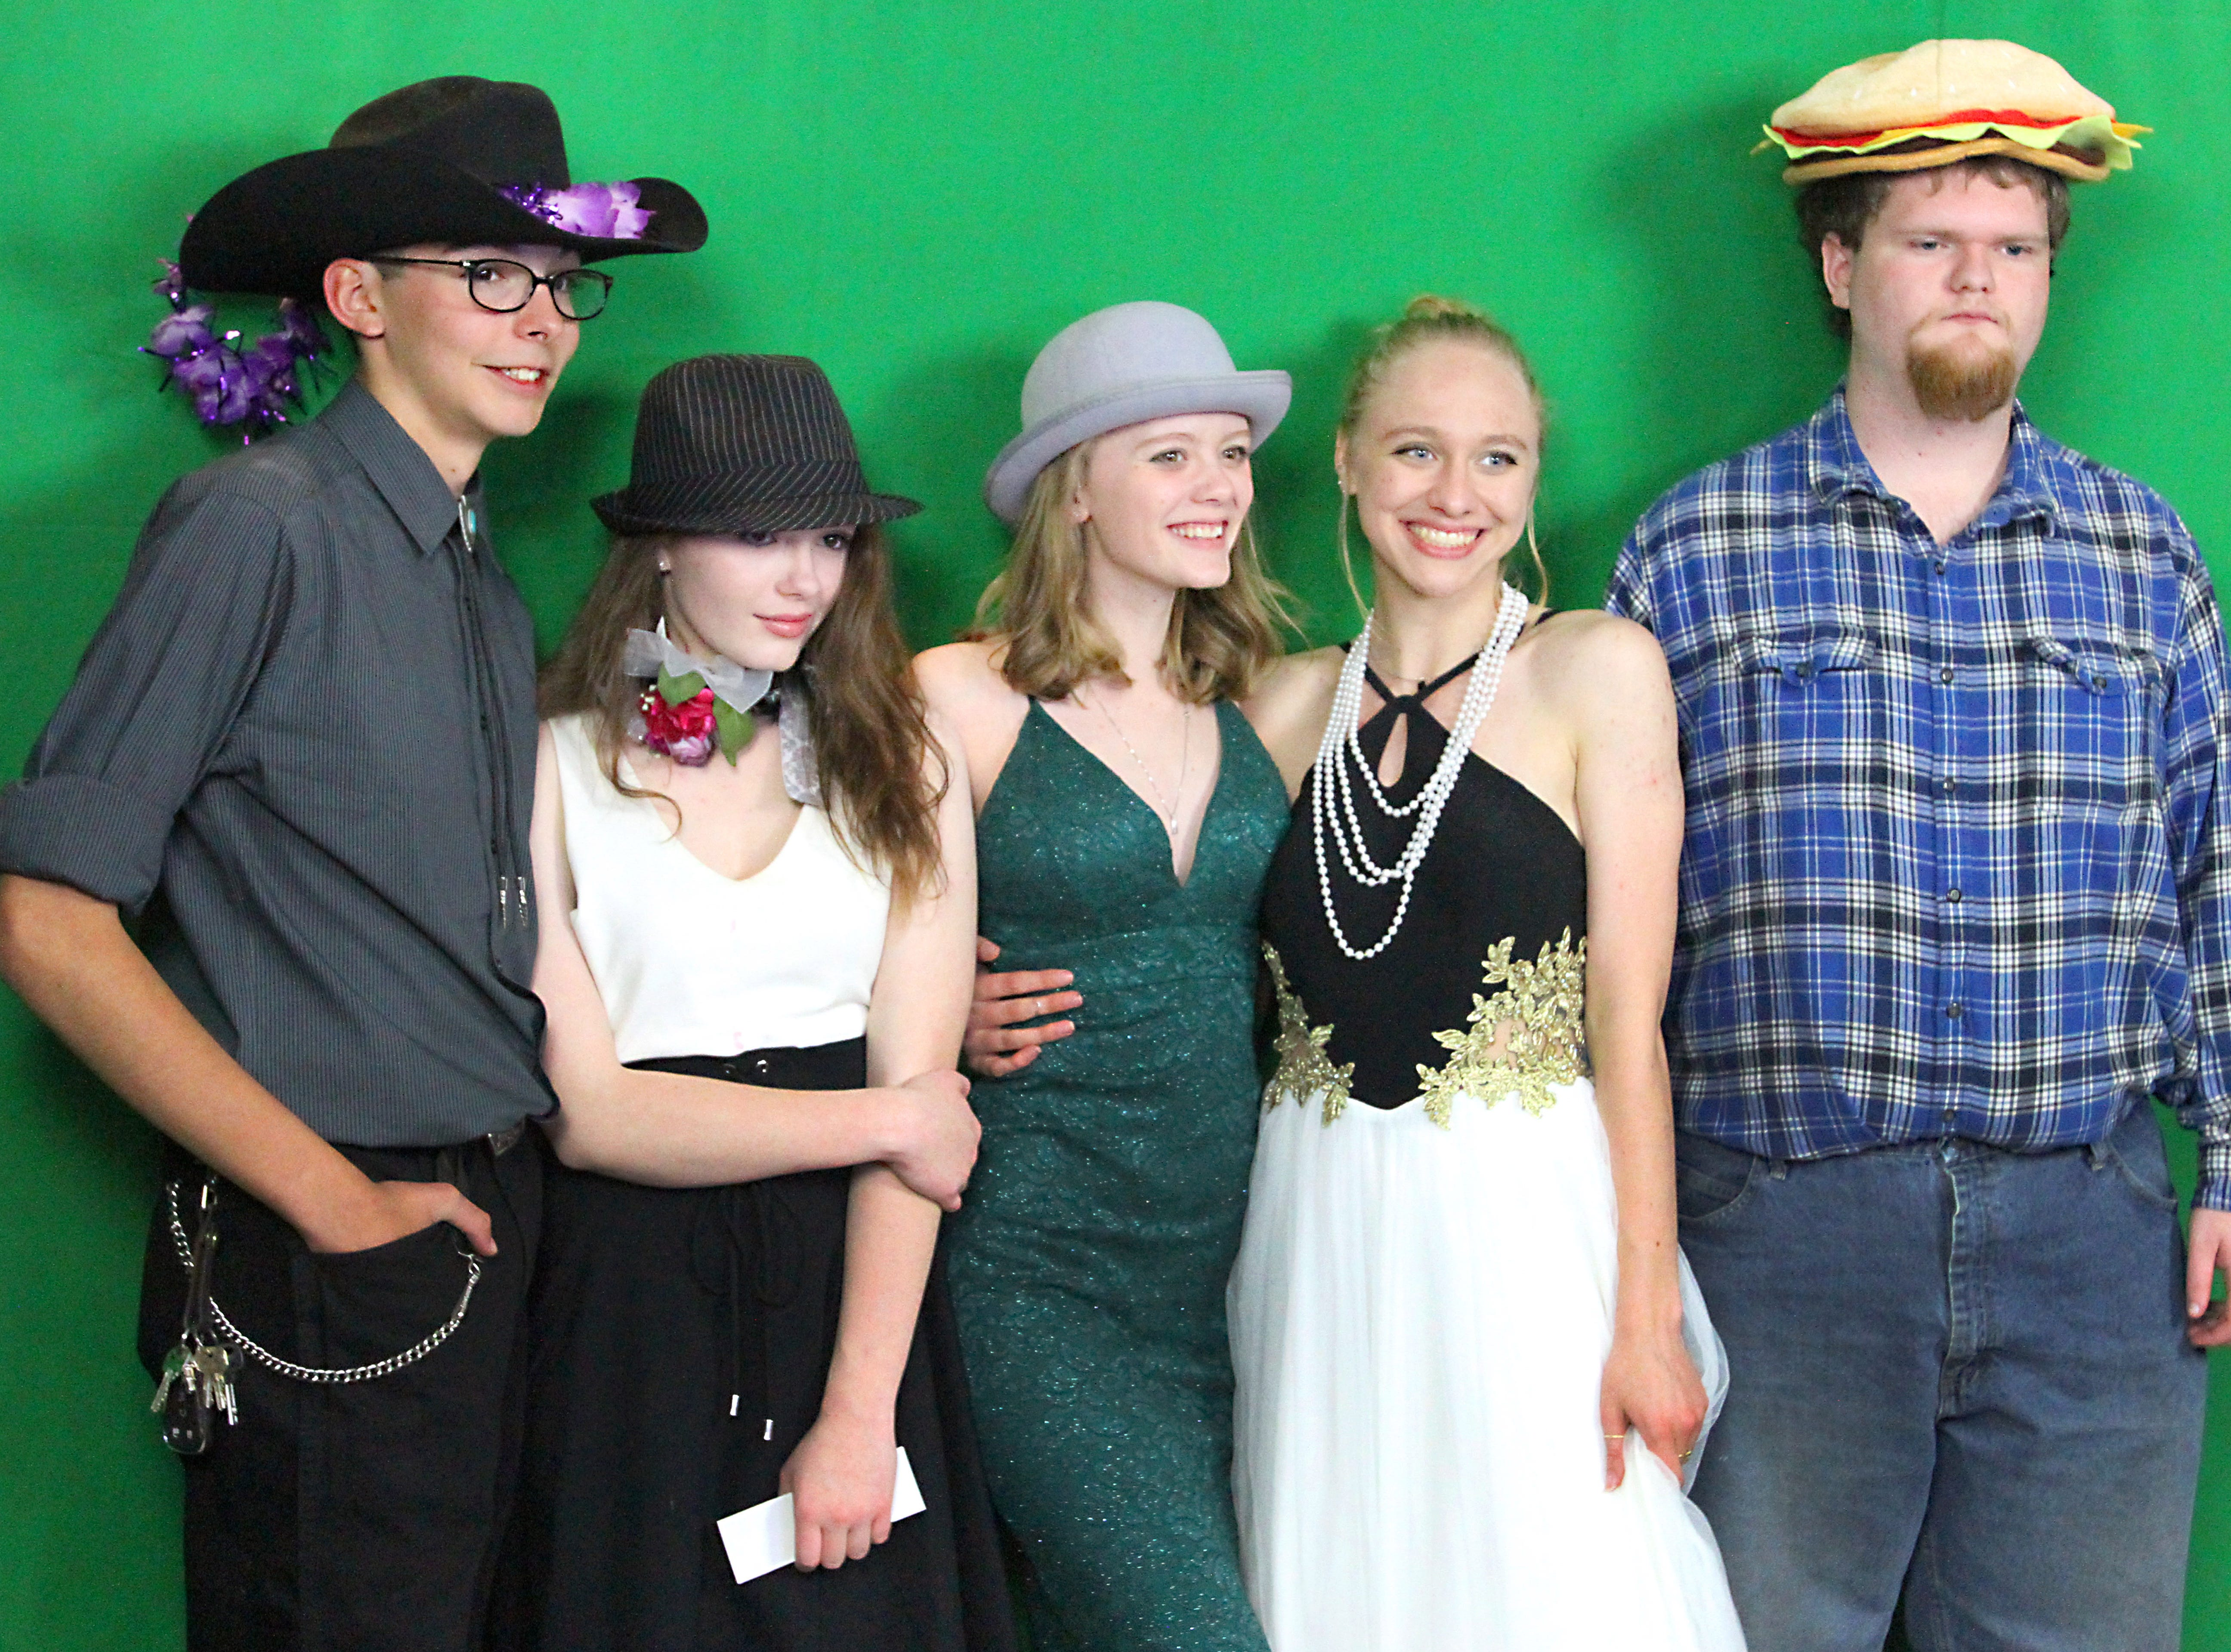 Joel Blocker / For the ColoradoanFort Collins high School students, from left, Joseph Schippers, Kelly Warden, Samantha Magill, Jennica Travis and Dalton Sandmann  pose in a front of a green screen while getting their pictures taken from a photo booth during the Fort Collins High School prom held at Canvas stadium Saturday night.